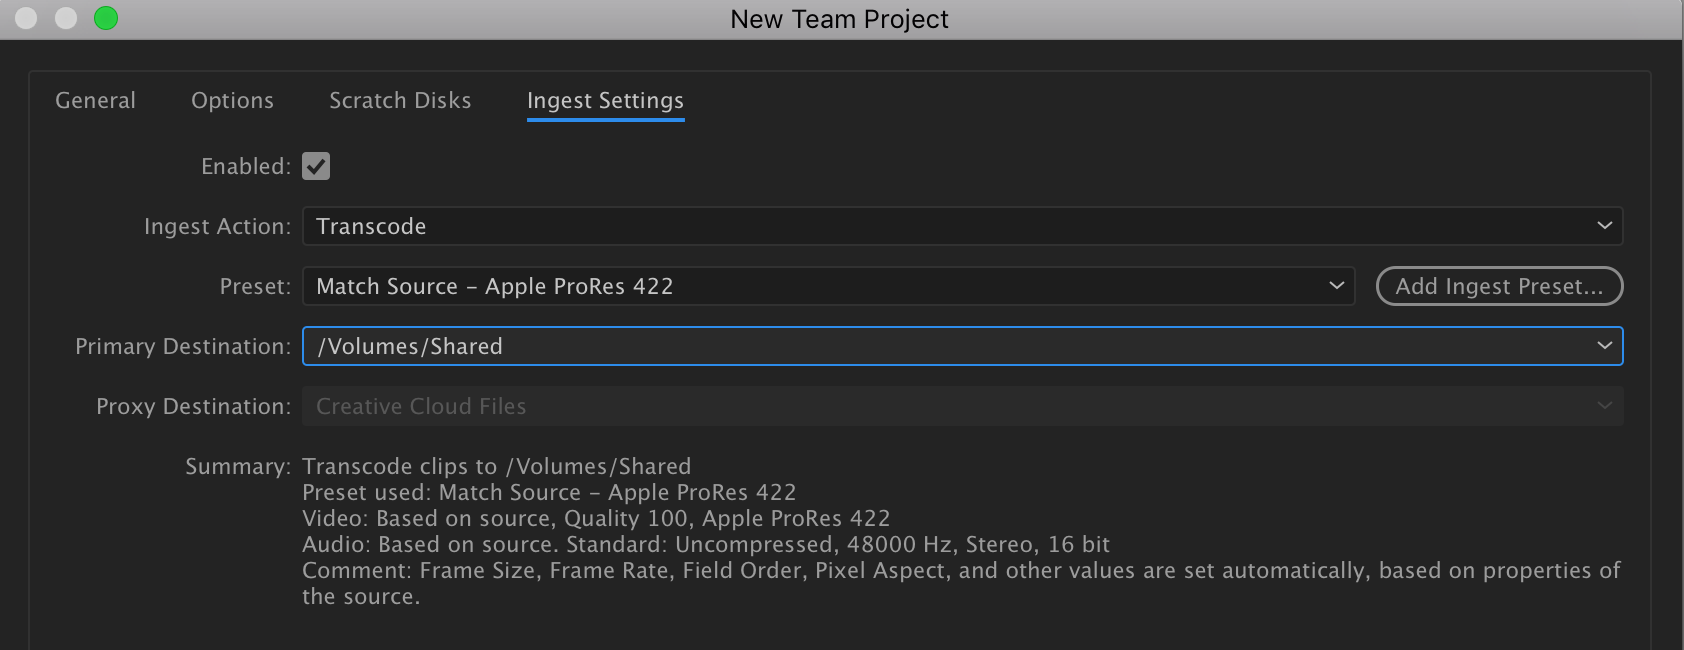 Ingest settings set to transcode clips to a shared storage after importing into Premiere.